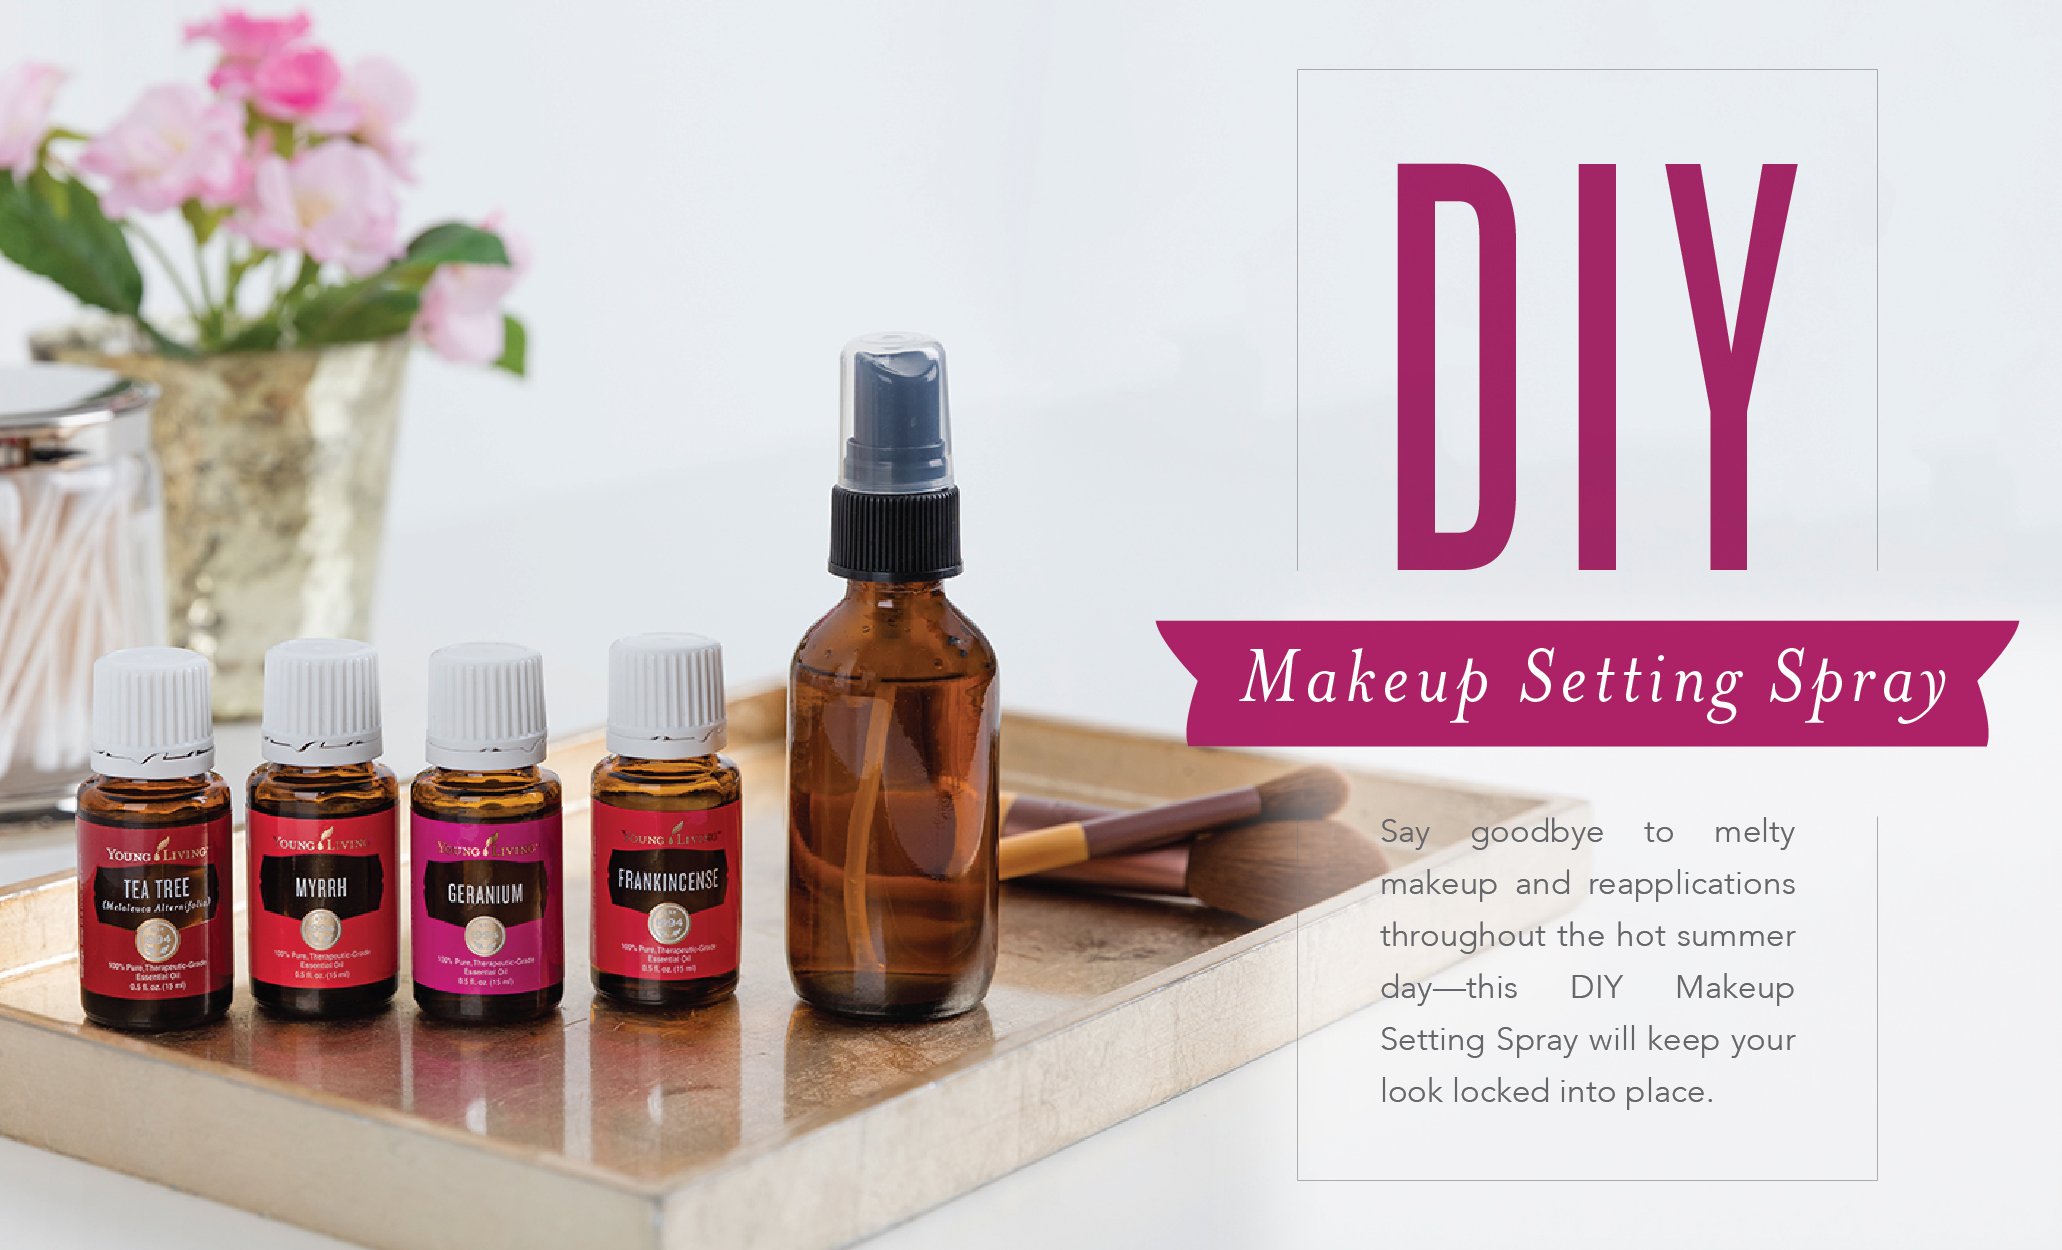 See more at  https://www.youngliving.com/blog/diy-makeup-setting-spray/